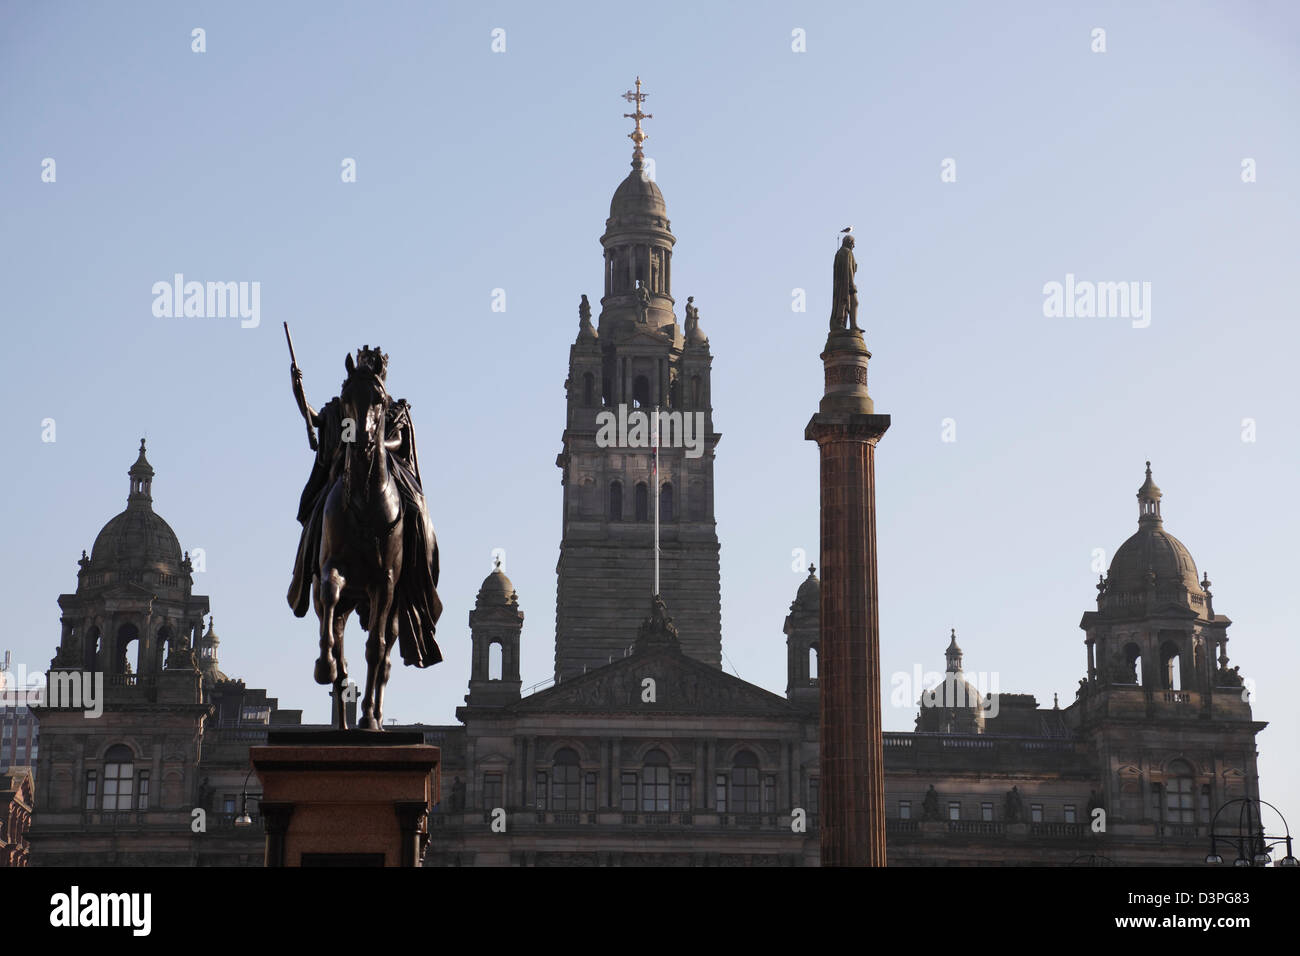 View looking towards the City Chambers on George Square in Glasgow city centre, Scotland, UK - Stock Image